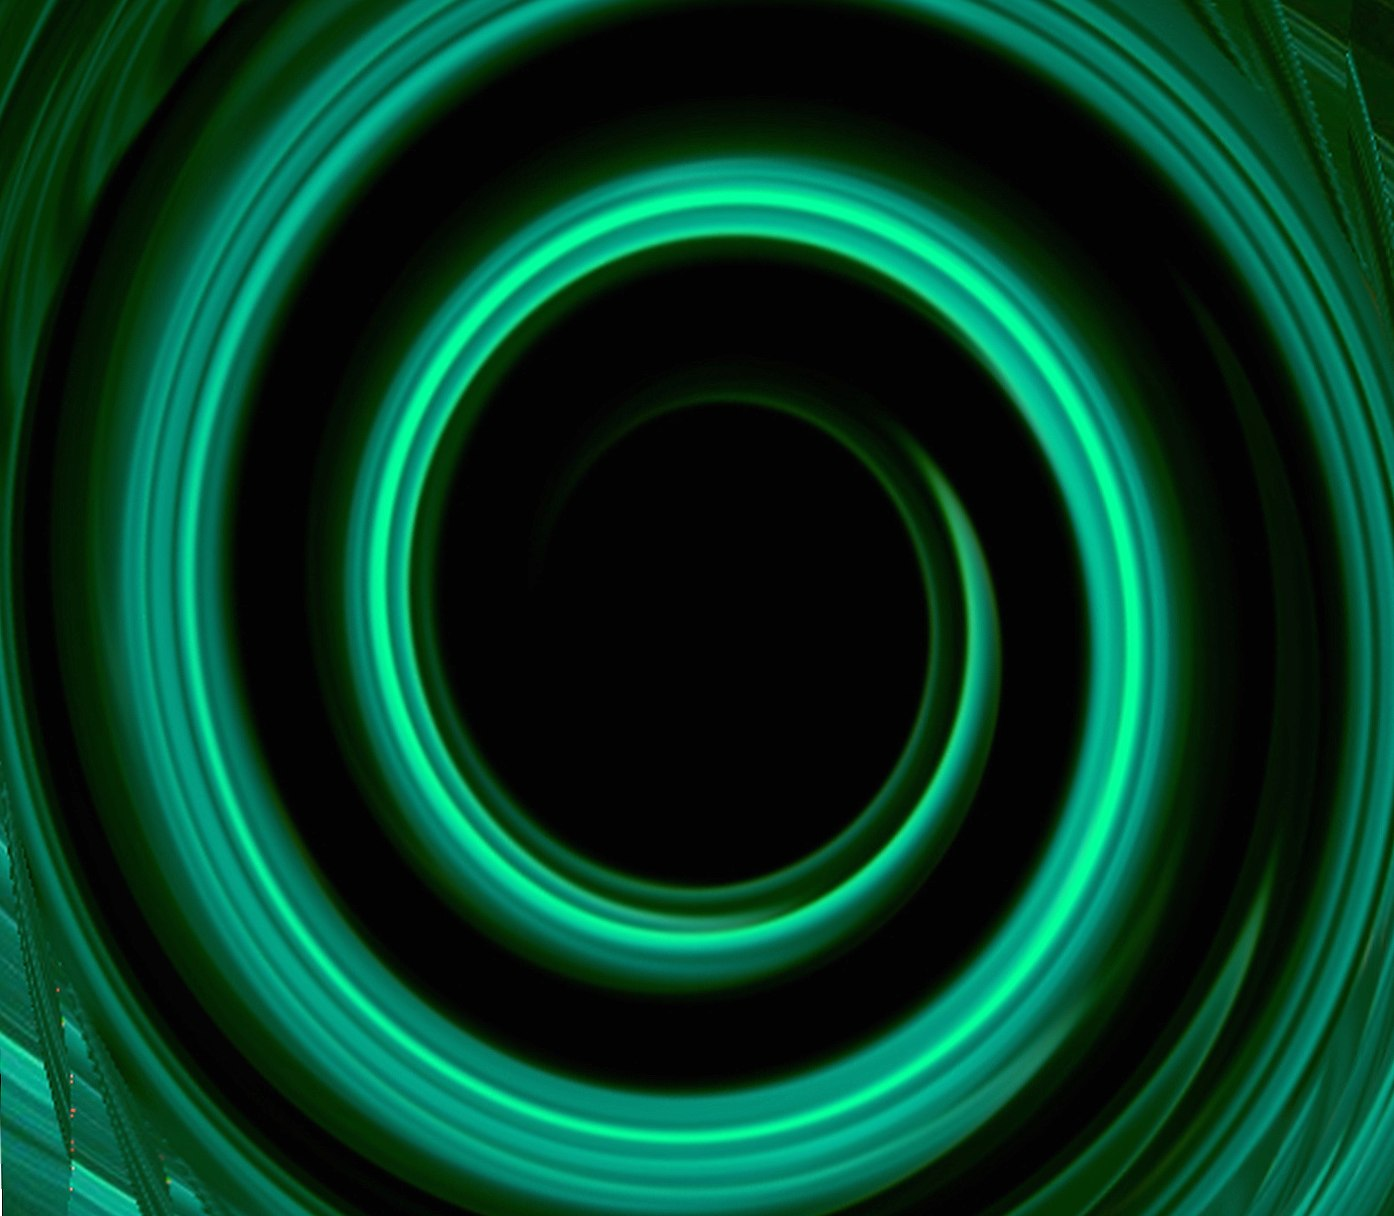 Greenspiral wallpapers HD quality